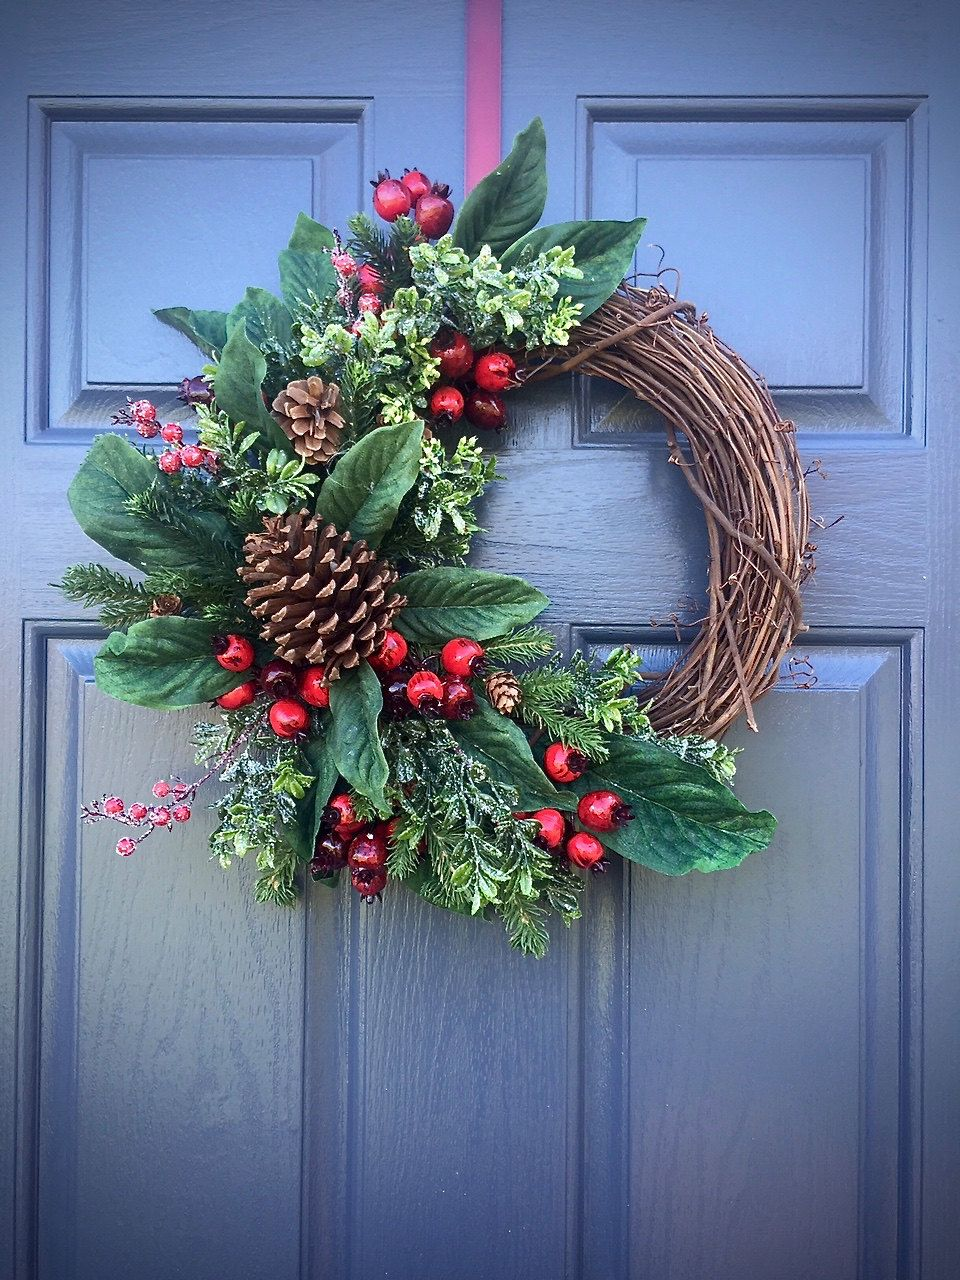 Pinecone wreaths winter door wreaths green red winter Christmas wreath decorations